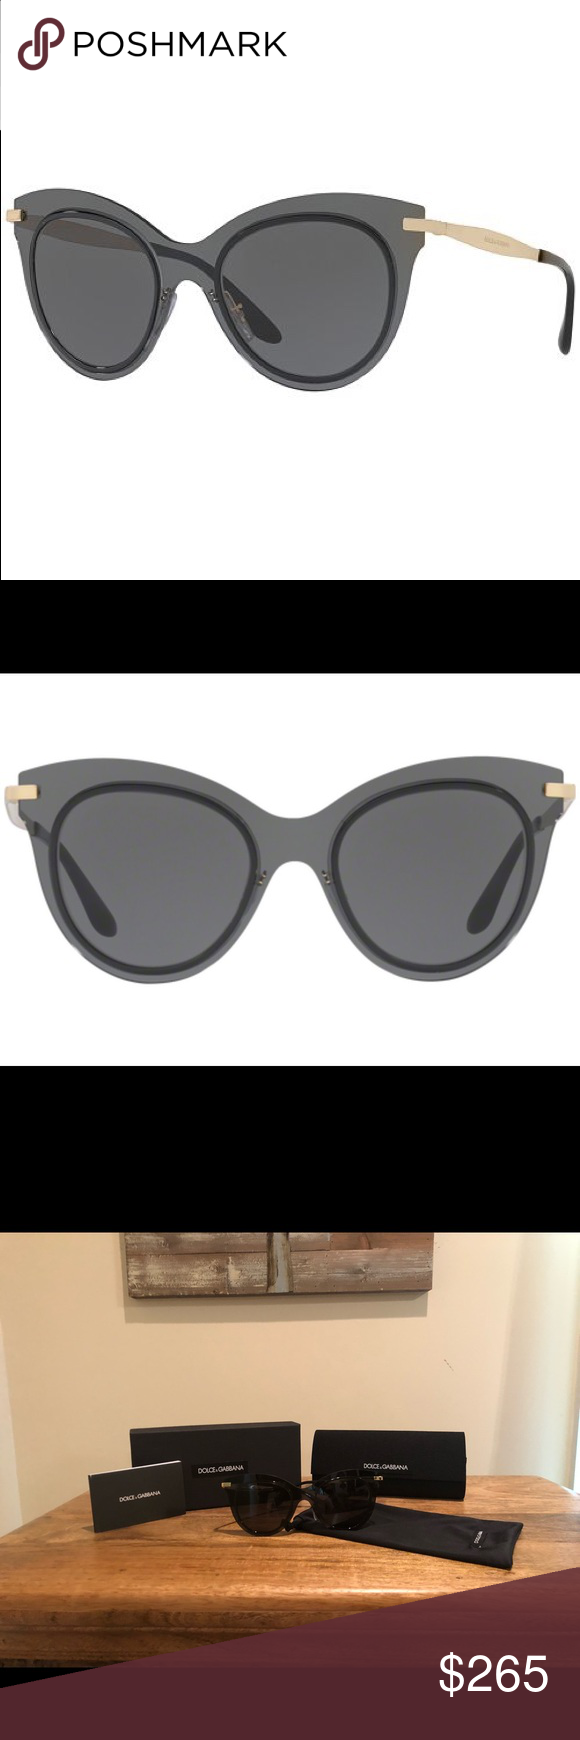 d5eec2e6acf2 DOLCE   GABBANA DG2172 Sunglasses Dolce   Gabbana DG 2172 in smoke and  gold. Brand new. Comes with case